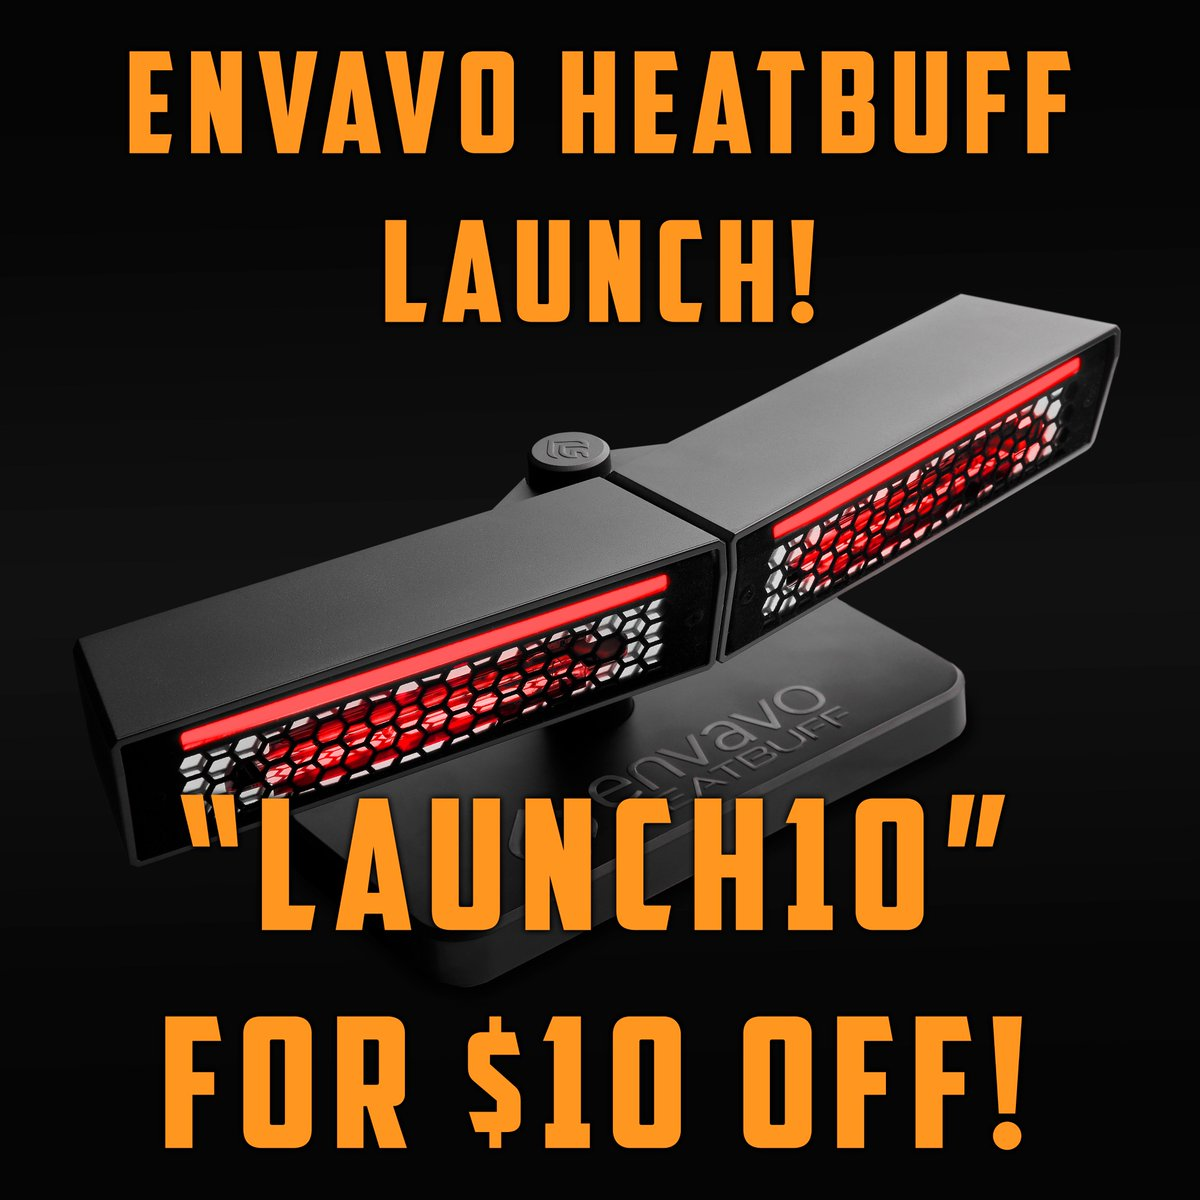 """🔥 It is happening! Today is our official launch day of the Envavo Heatbuff! It has been a long and tough journey, and we thank all of our followers for helping us grow! We are going to have a """"launch discount"""" the next 24 hours. Thank you all! 🏆 #NoMoreColdHands #EnvavoHeatbuff https://t.co/FVKQsw8jQJ"""